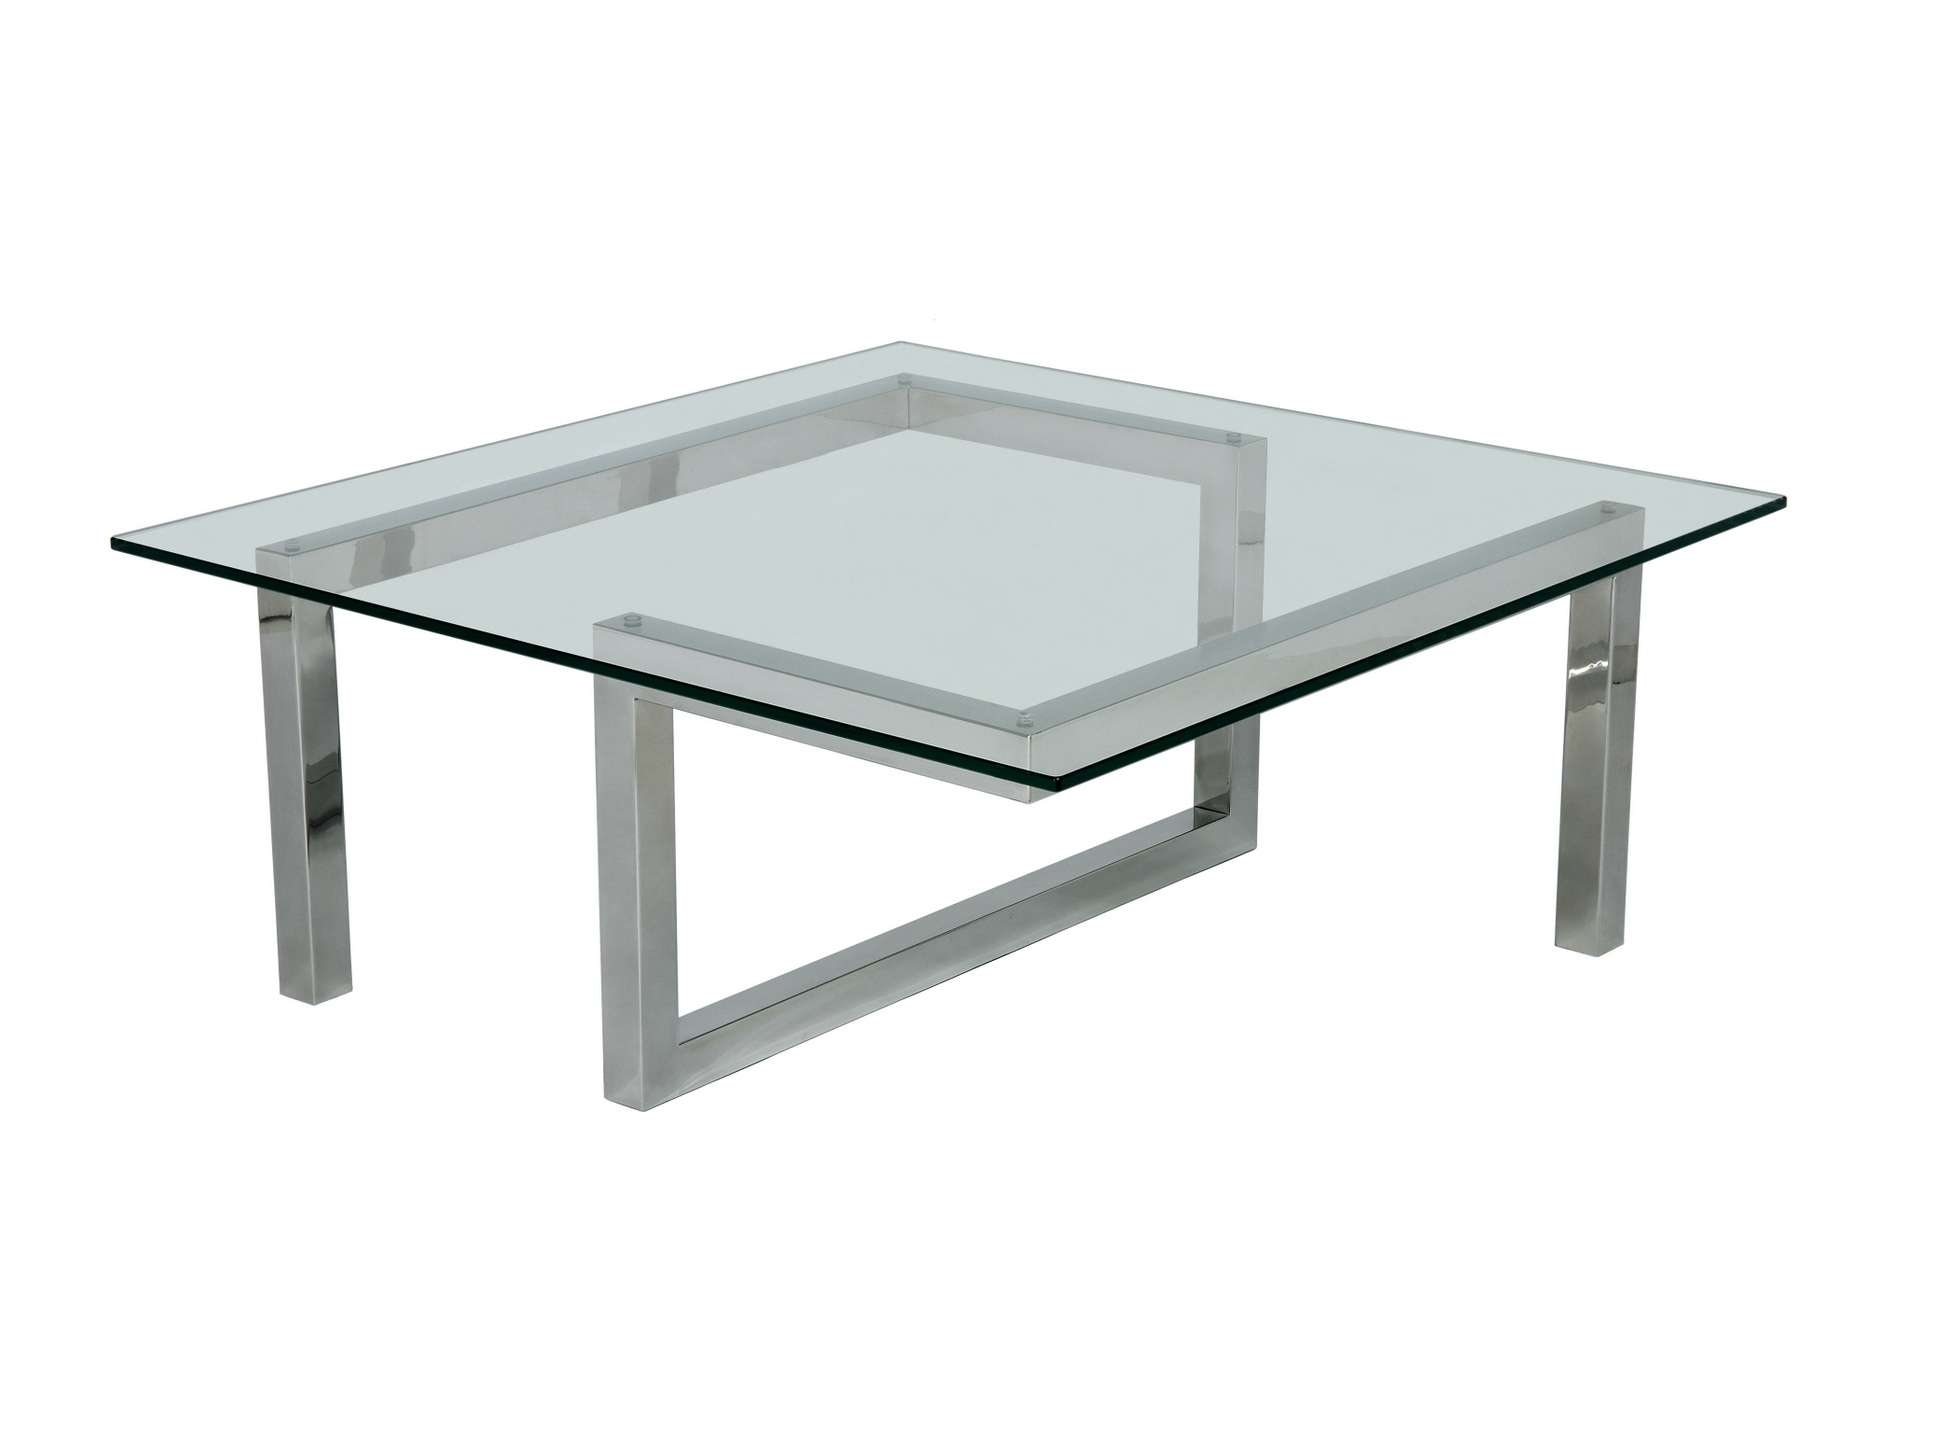 Current Square Glass Coffee Tables Inside Square Glass Coffee Table For Living Room Decoration – Ruchi Designs (View 10 of 20)